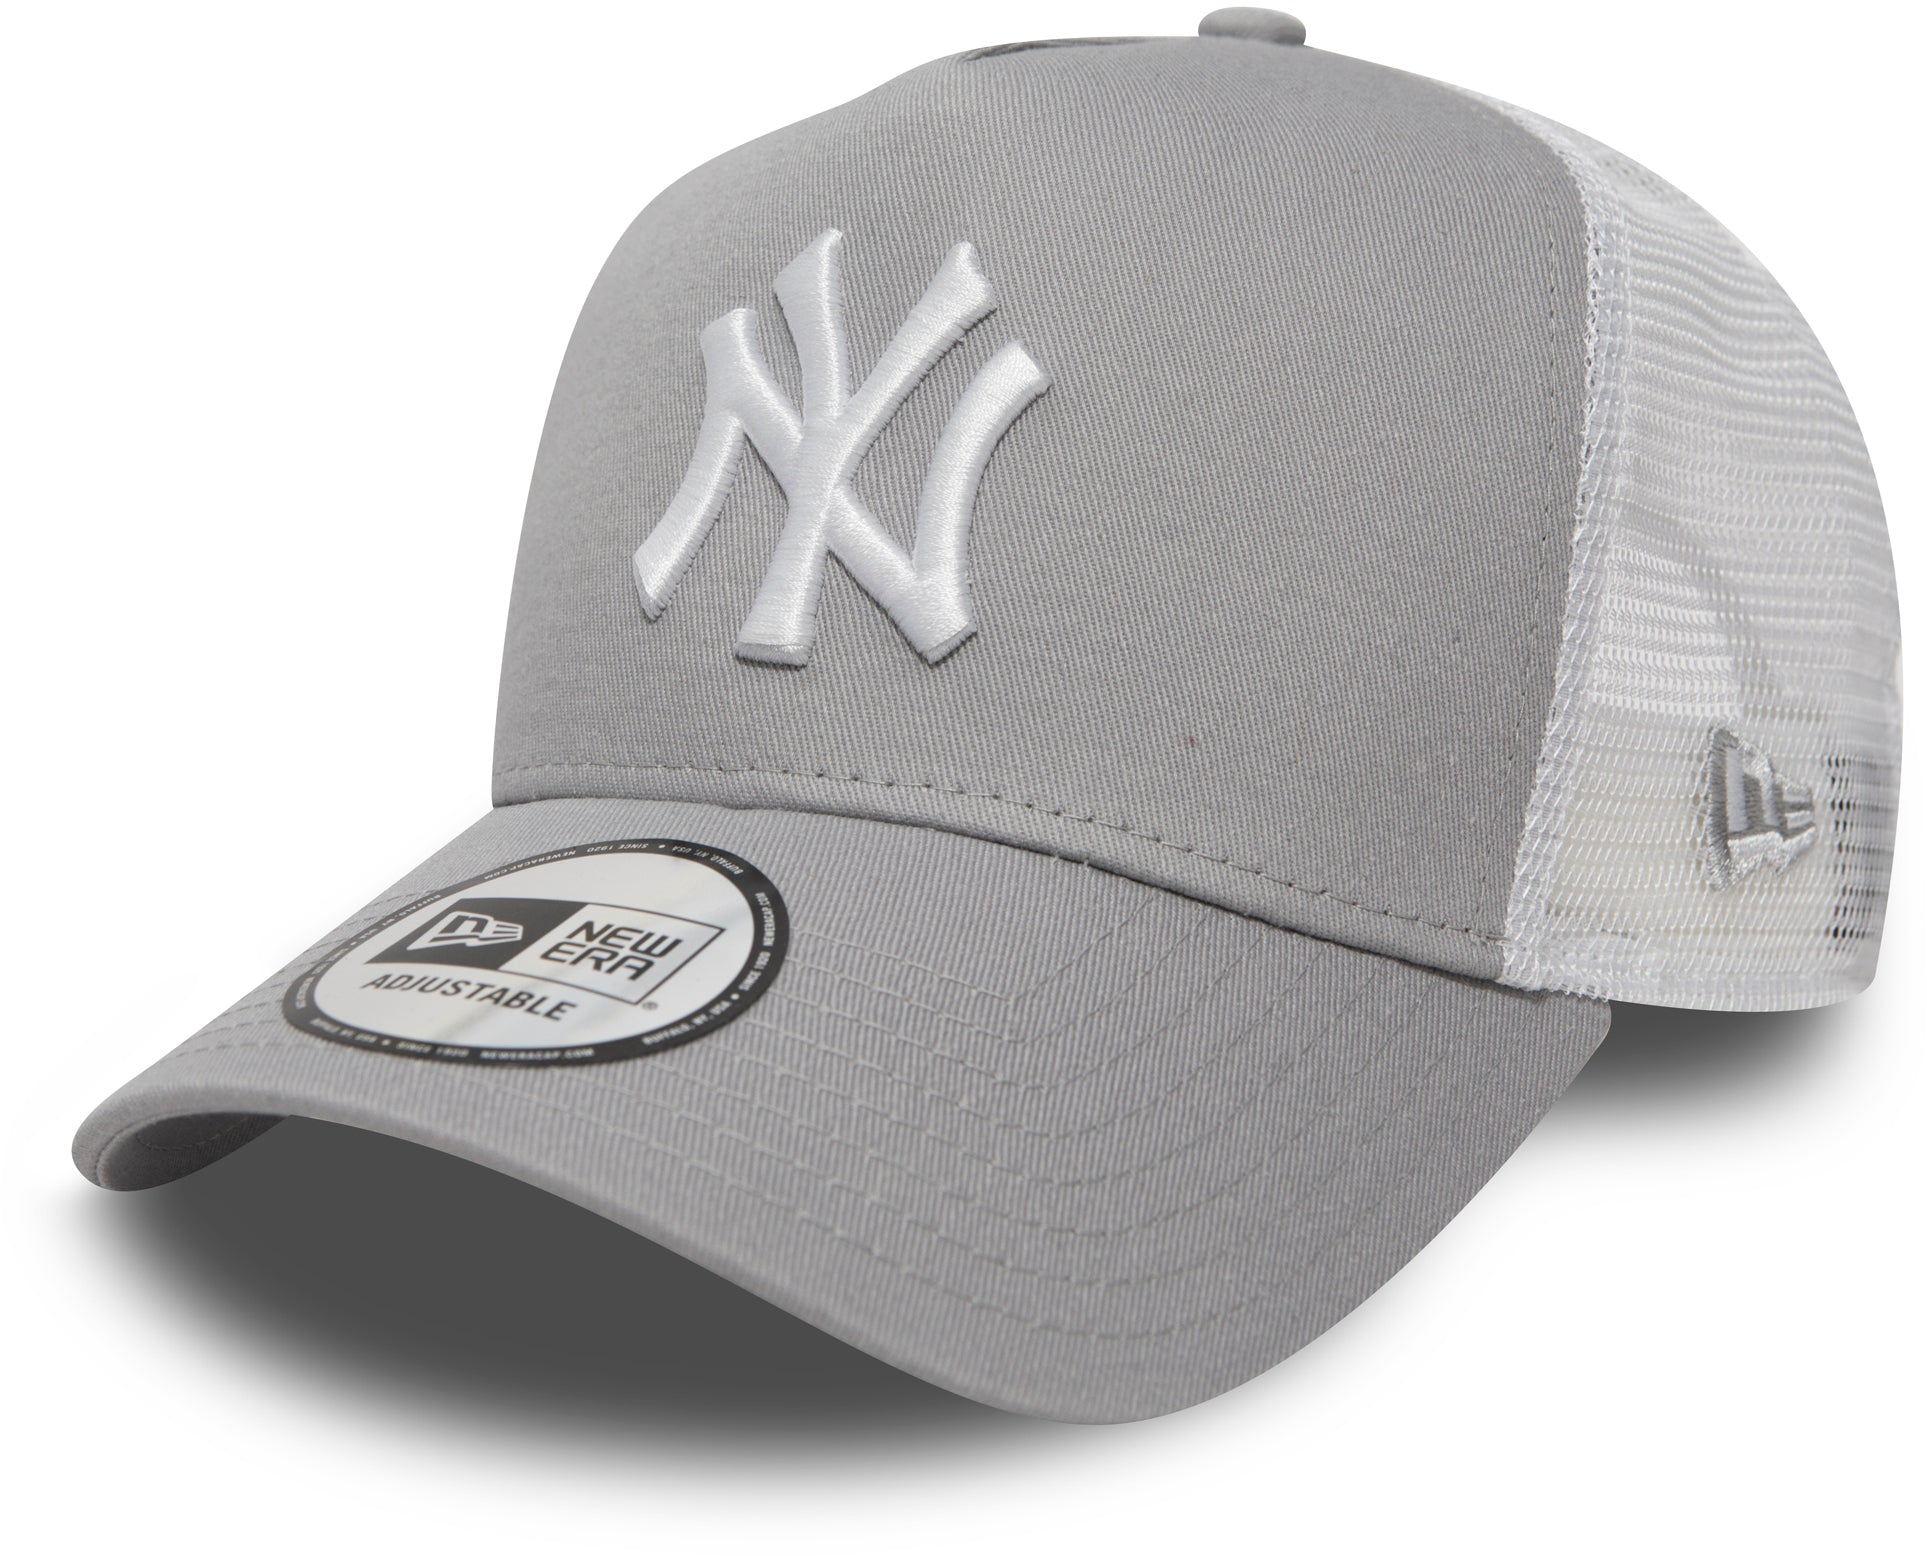 Mlb New York Yankees Oliv Men's Accessories New Era Adjustable Trucker Cap Hats